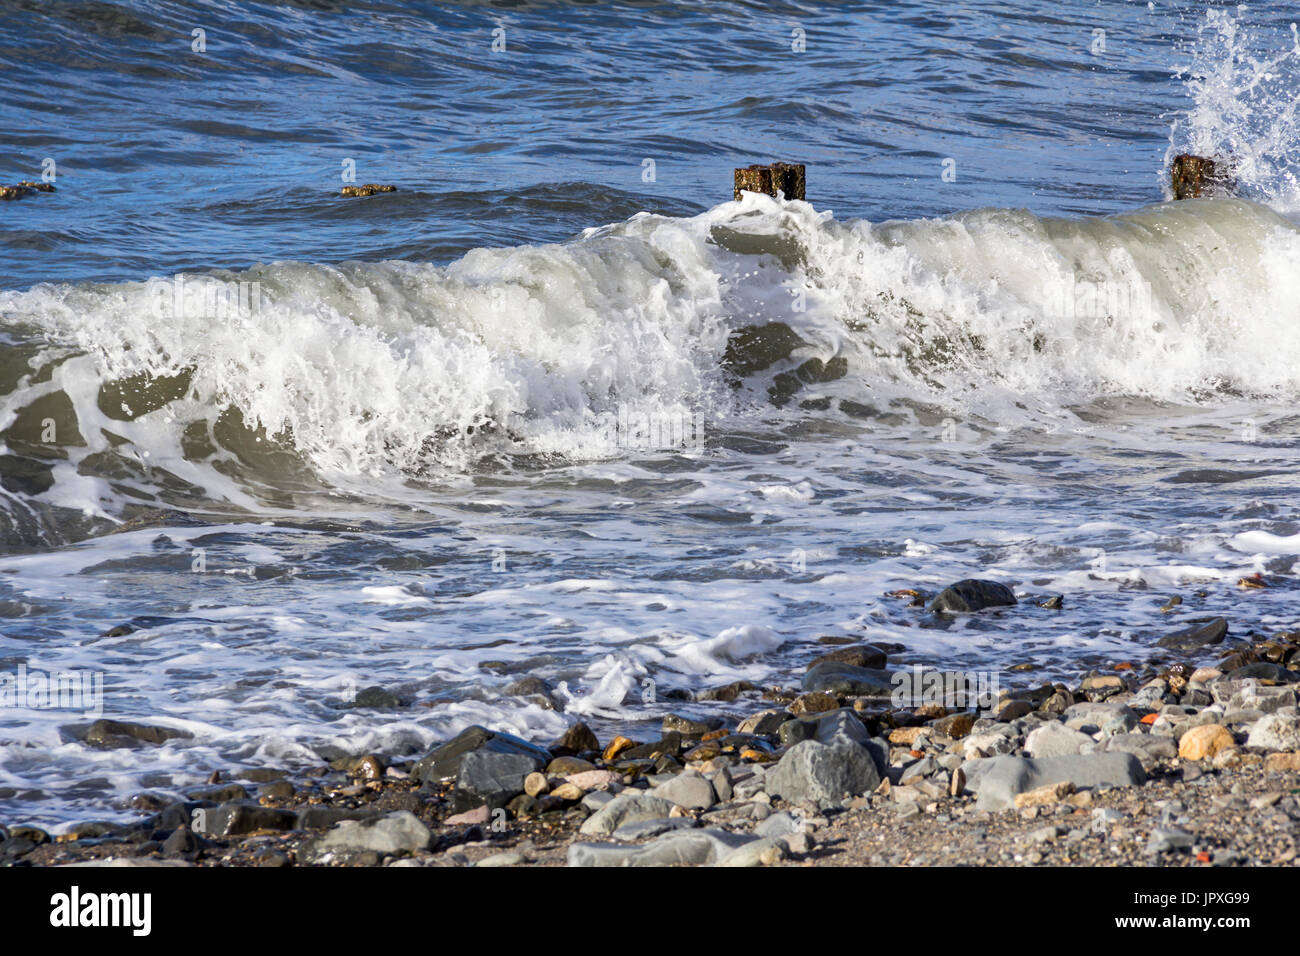 Waves rolling in over Breakwaters onto a Rocky Beach at Llanfairfechan, north Wales. The image was taken on 14 September 2013 - Stock Image